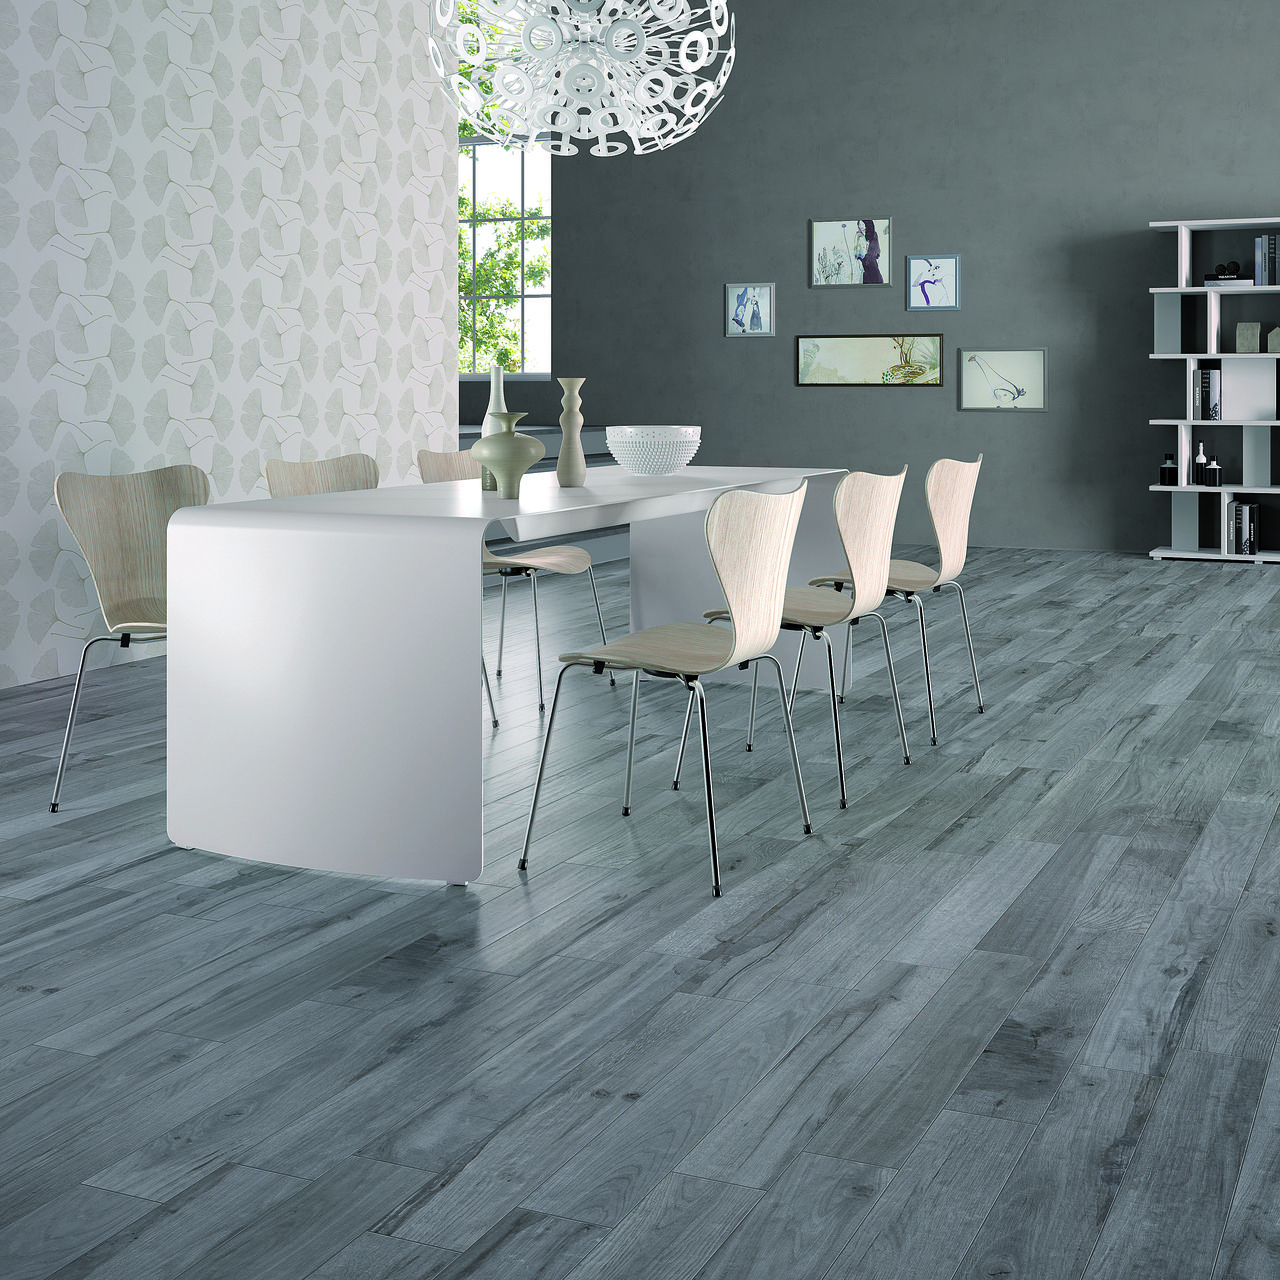 Soleras anthracite 8 x 32 wood look porcelain 498 per square discount glass tile store soleras anthracite 8 x 32 wood look porcelain dailygadgetfo Choice Image